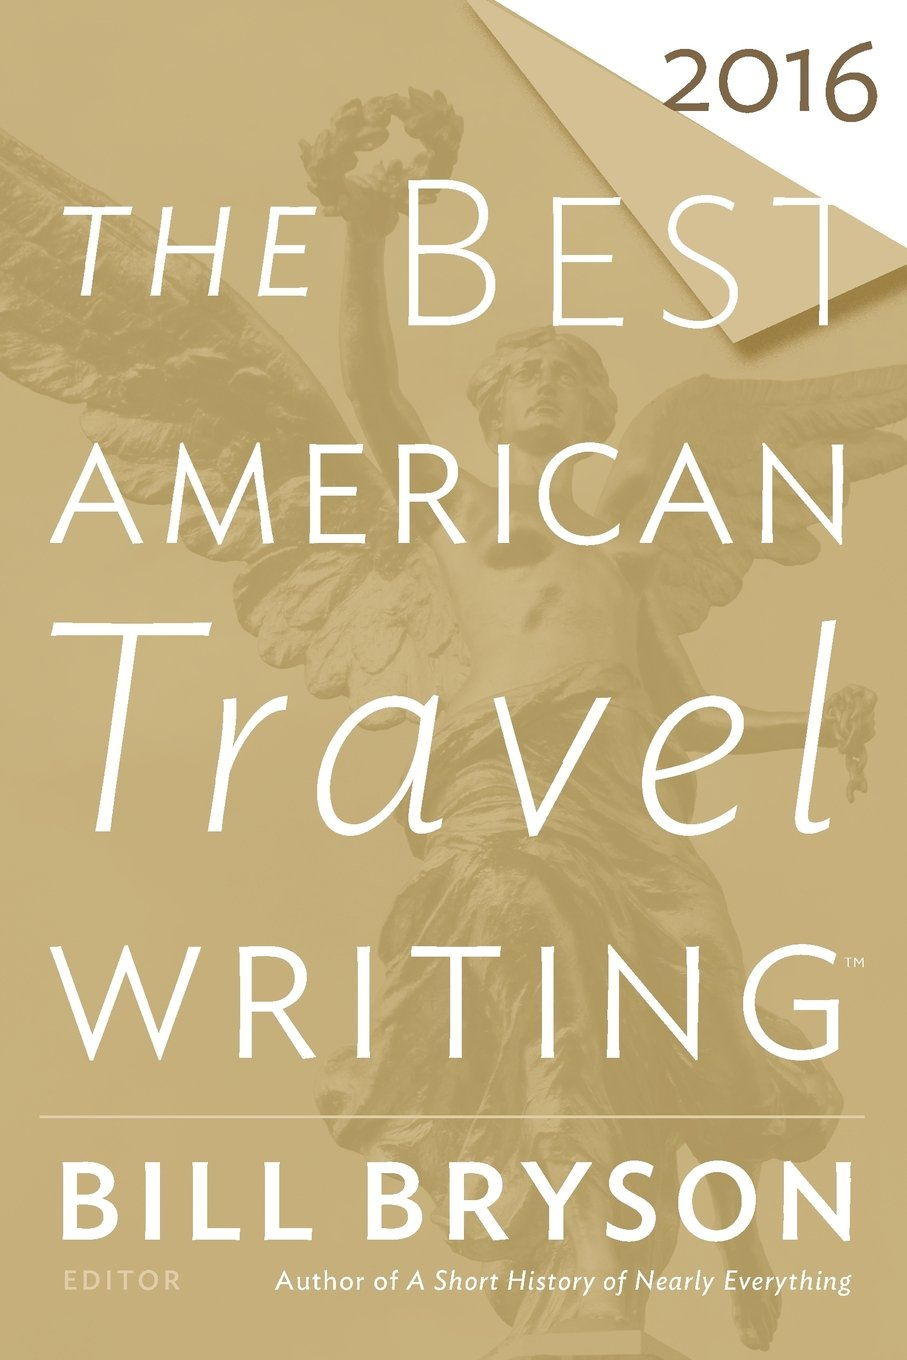 Best American Travel Writing 2016 product image